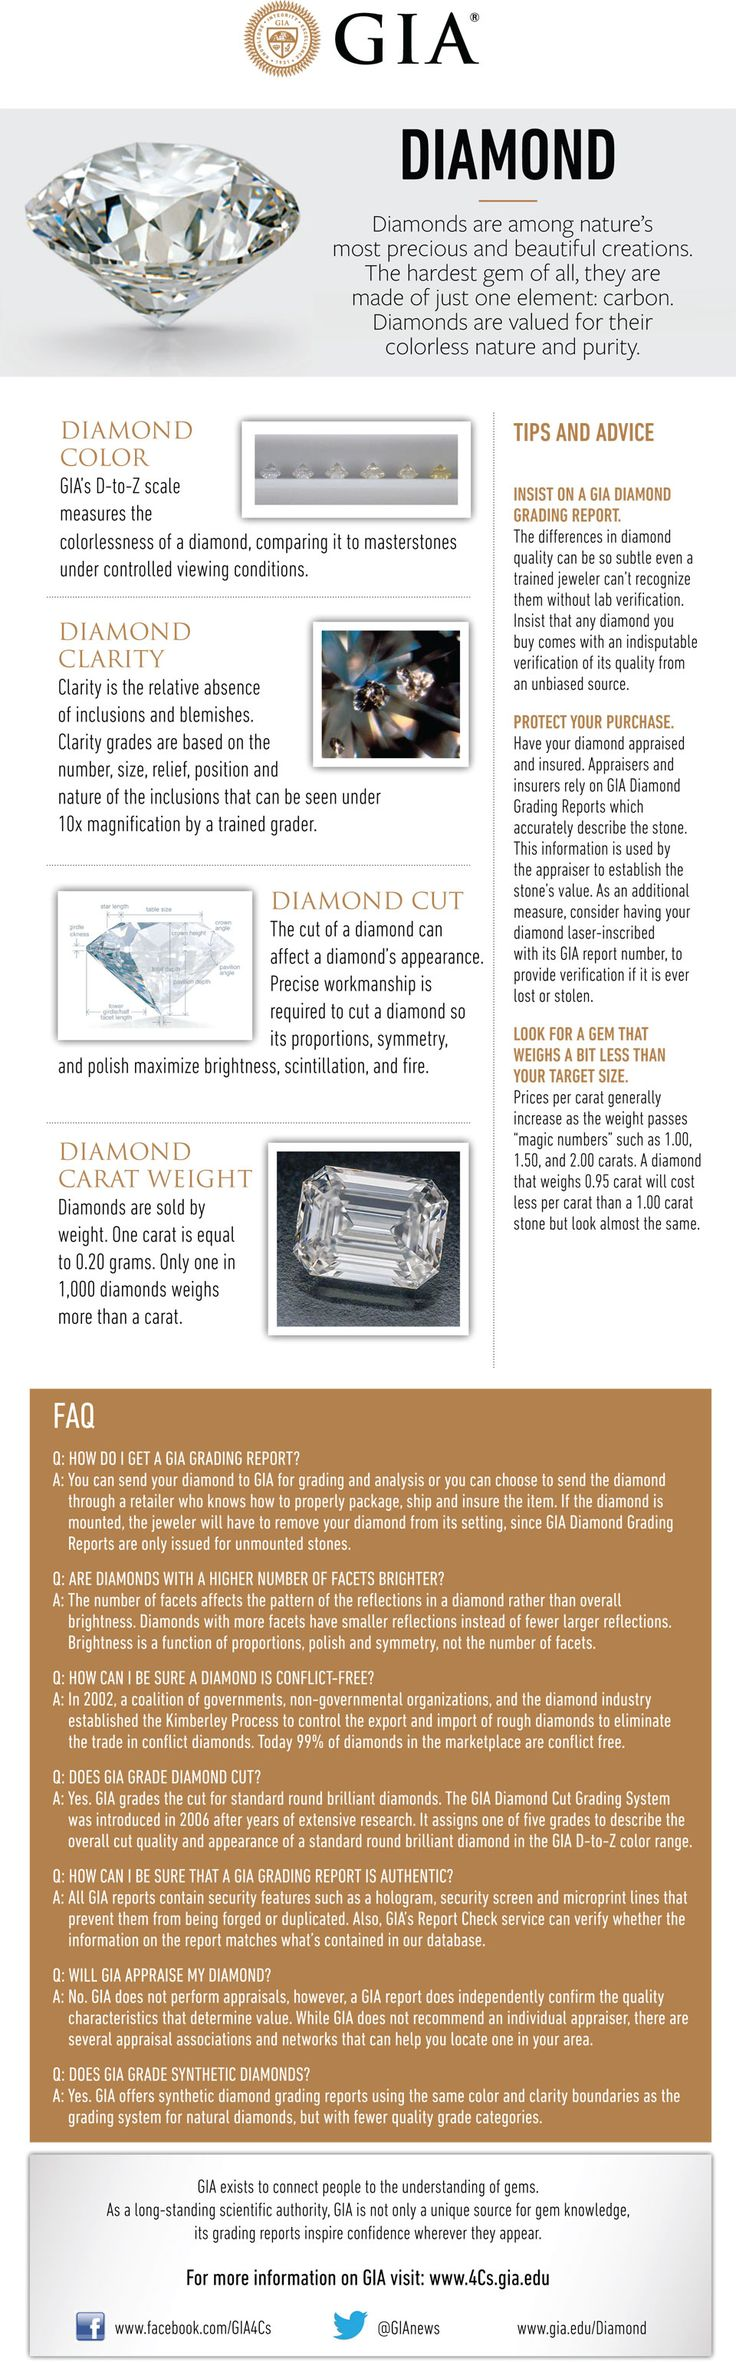 Diamond Buying Guide. GIA (040114)